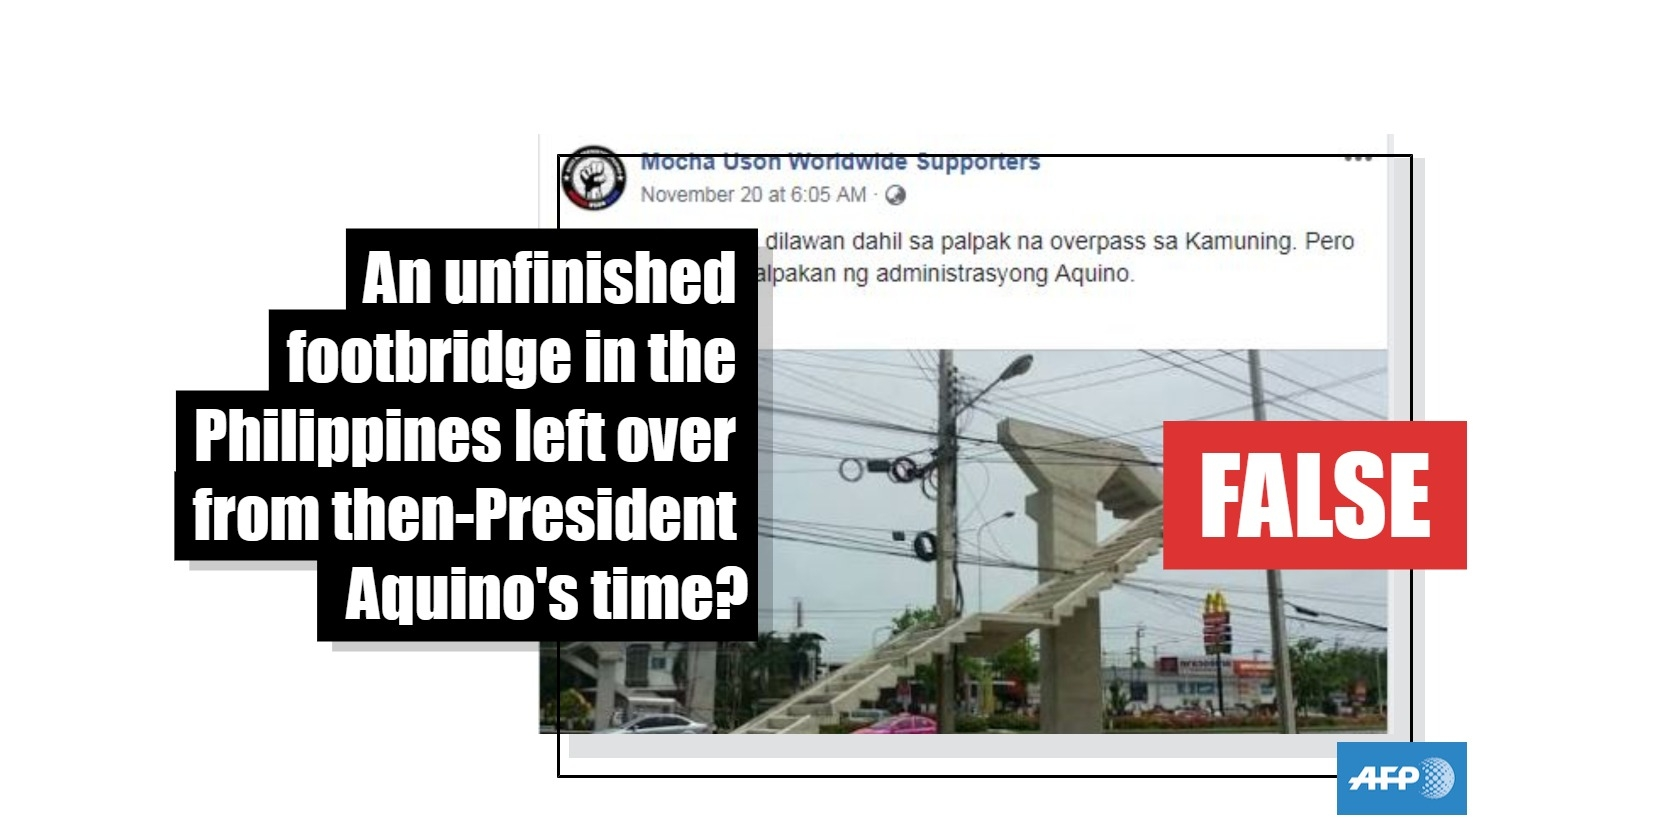 No, this photo does not show a footbridge in the Philippines that was left unfinished during the term of then-president Benigno Aquino